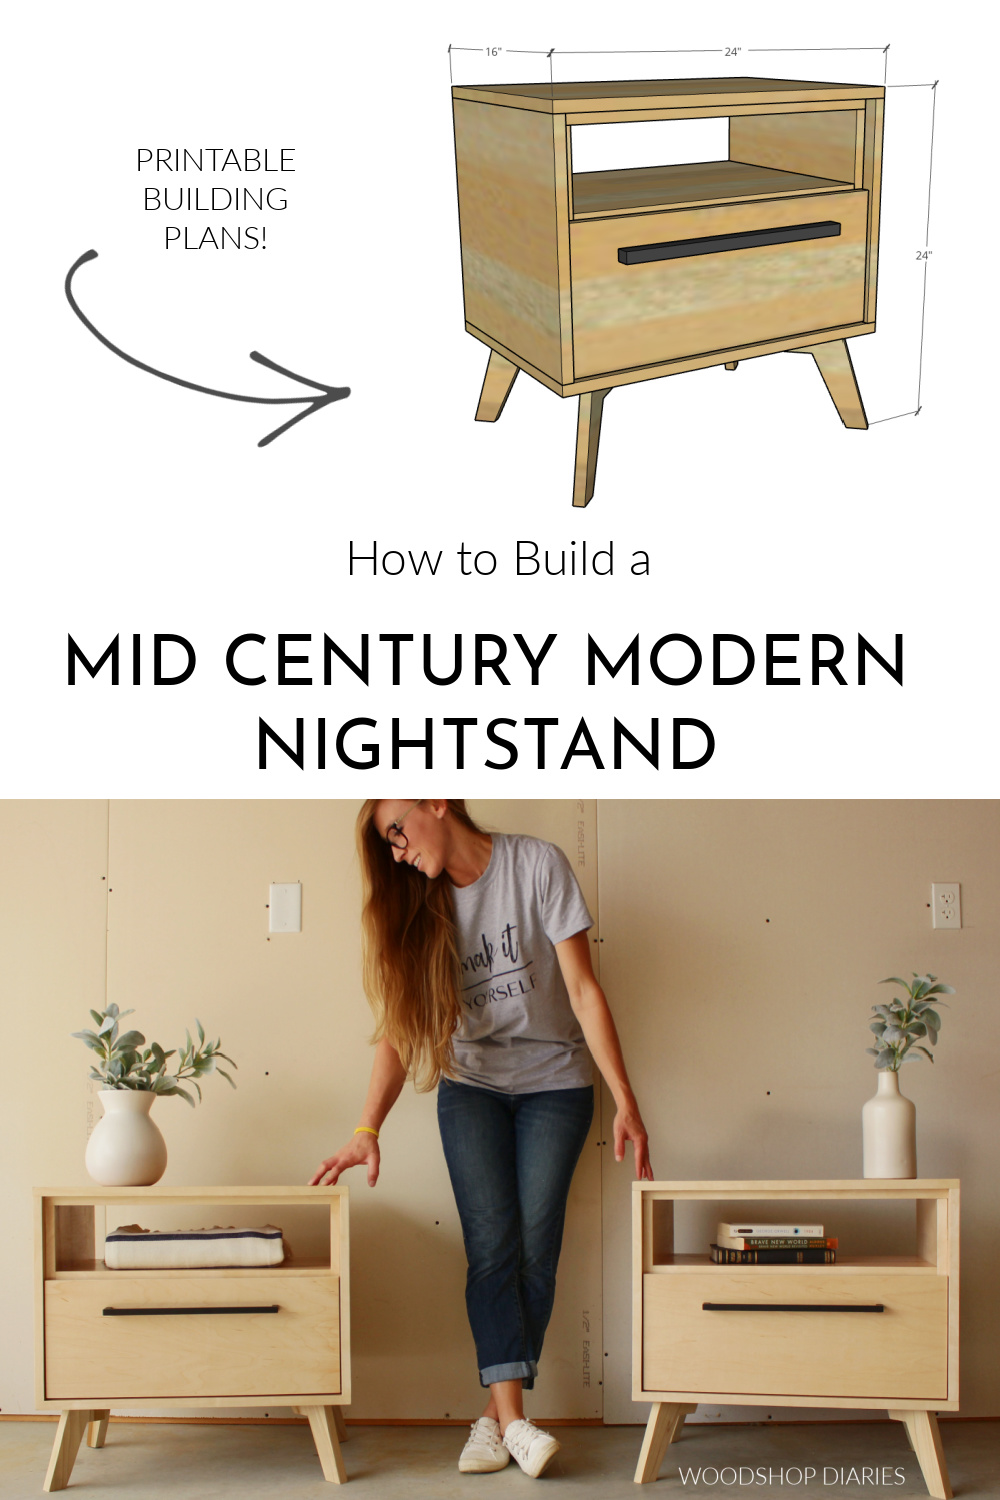 """Pinterest collage image showing dimensional diagram of nightstand at top and Shara Woodshop Diaries with two finished night stands at bottom with text """"How to build a mid century modern nightstand"""""""